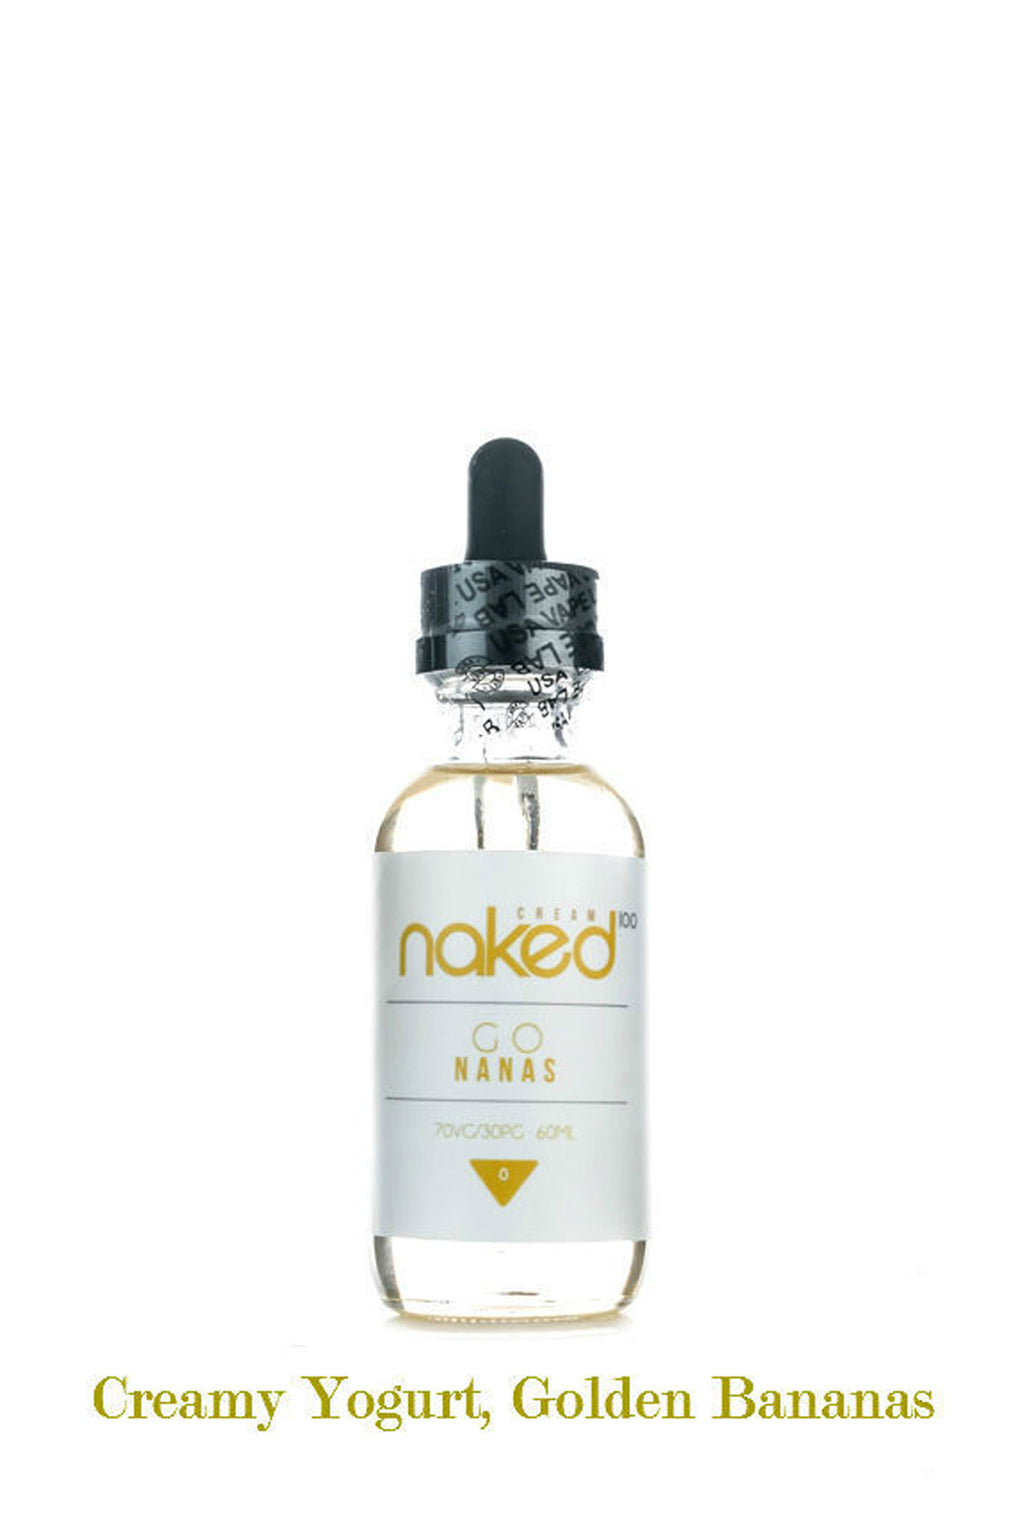 Naked 100 - Go Nanas 60mL